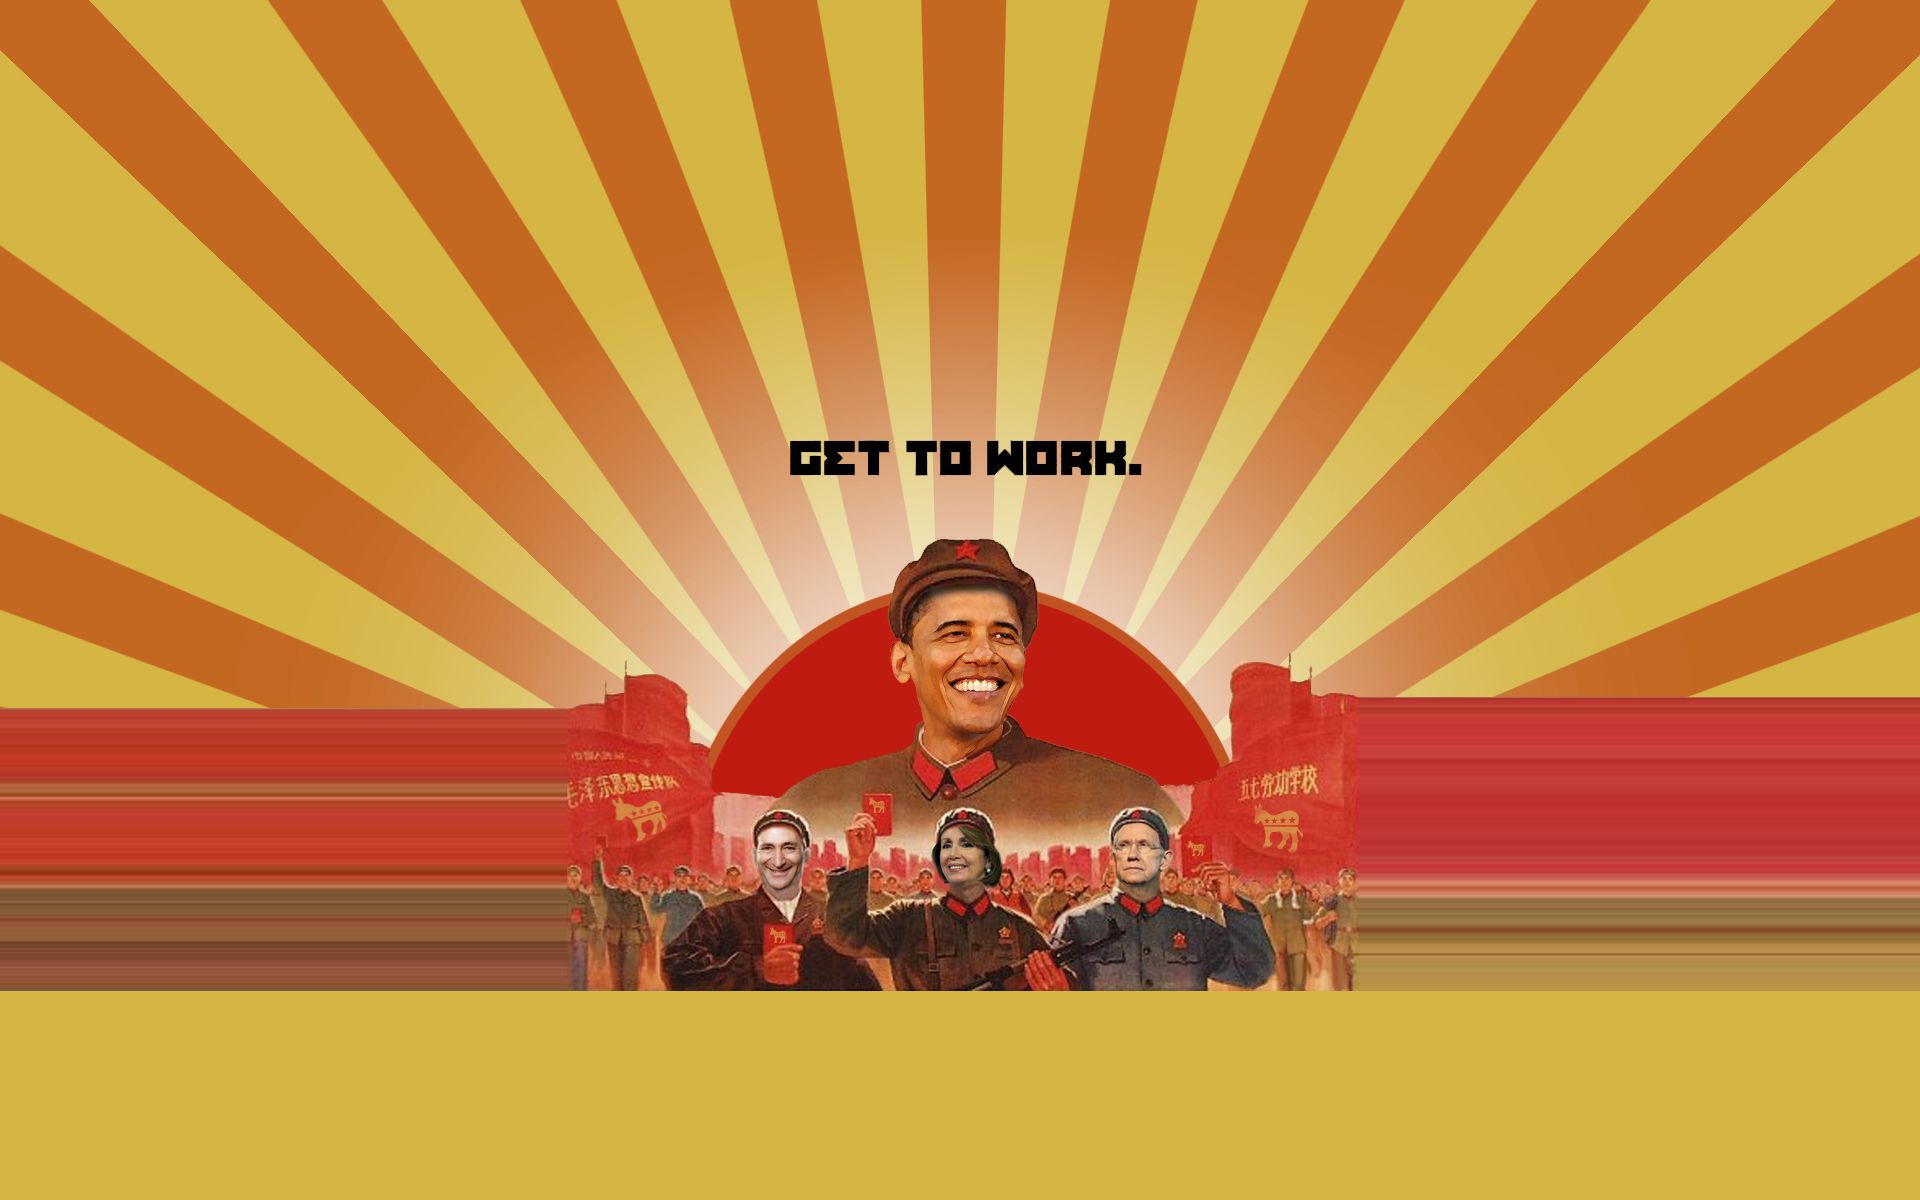 1920x1200 Obama in Chinese Themed Propaganda Poster, GET TO WORK | LOGOS & BRANDS